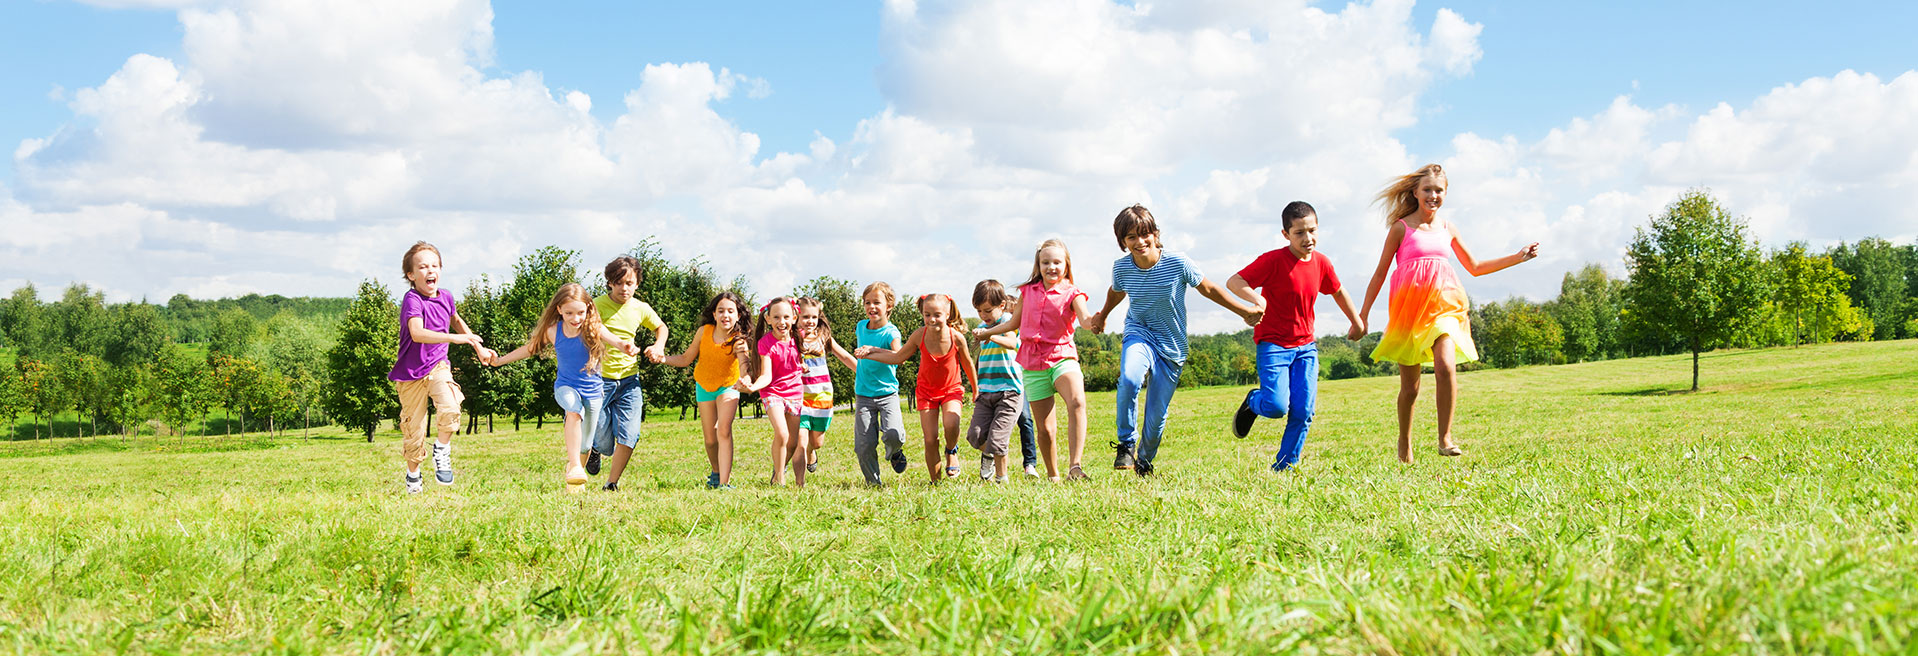 Kids Running - Pediatric Dentist in Ann Arbor, MI